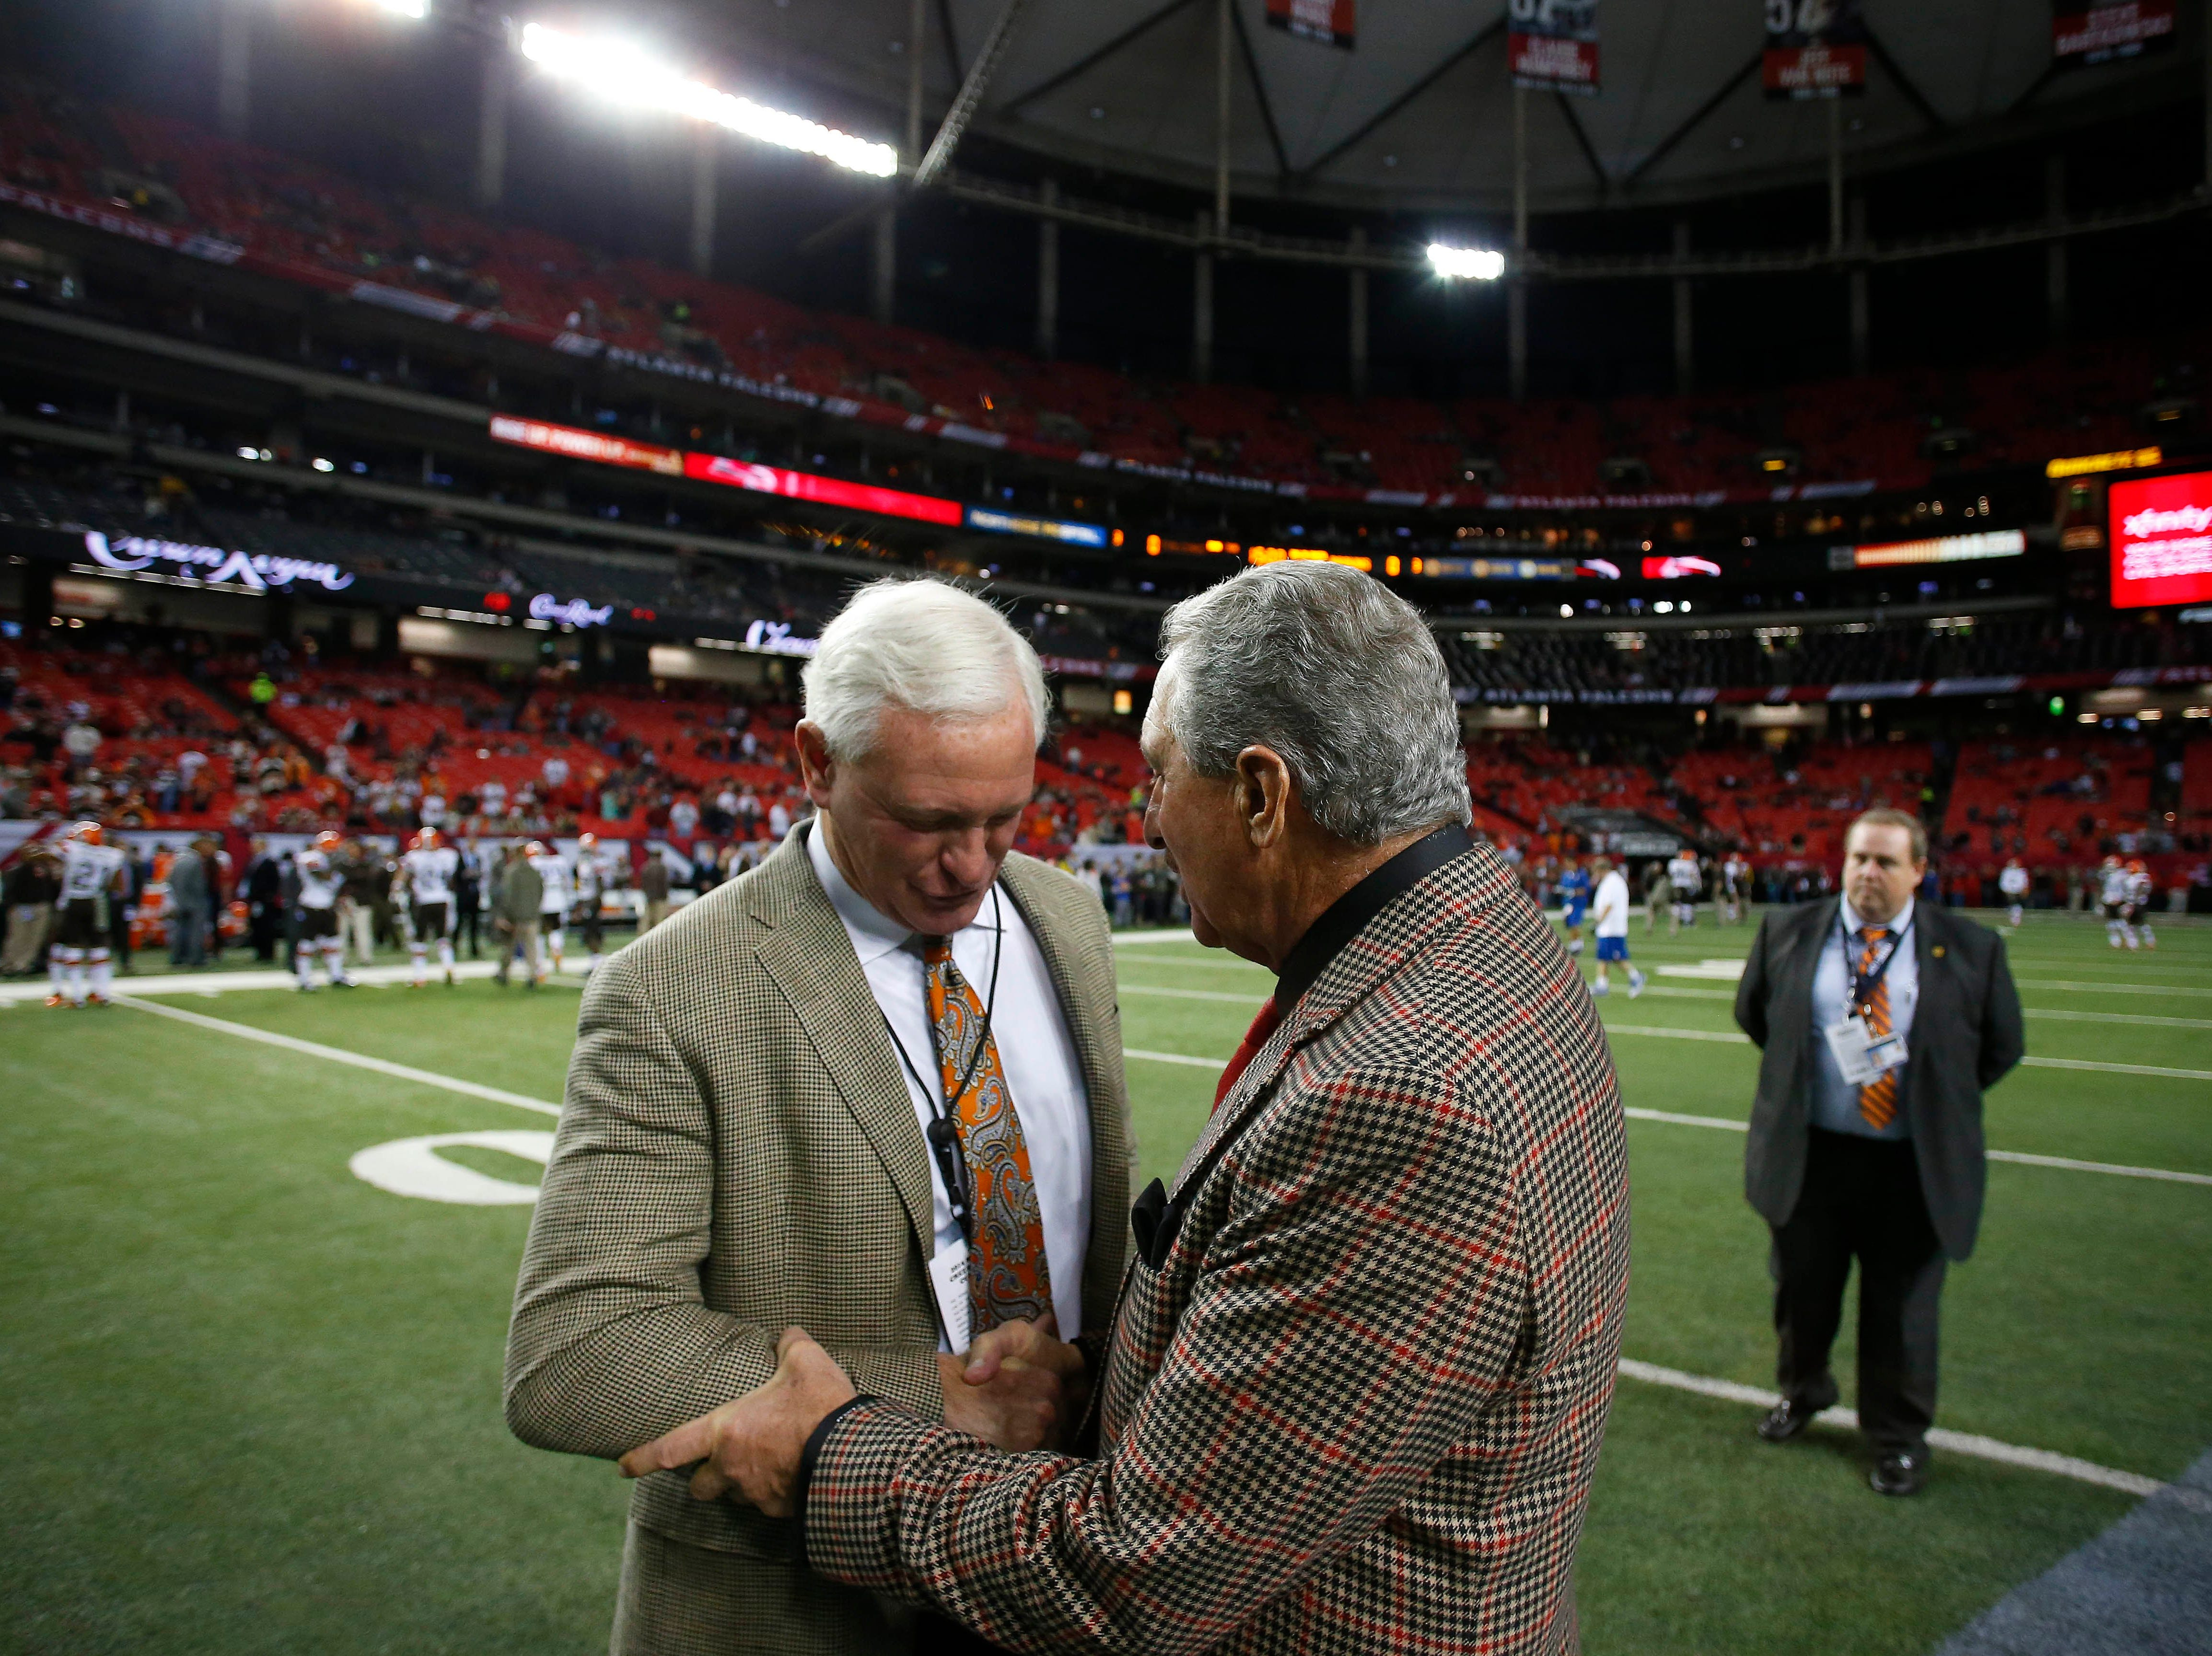 Cleveland Browns owner Jimmy Haslam, left, greets Atlanta Falcons owner Arthur Blank during the first half of an NFL football game, Sunday, Nov. 23, 2014, in Atlanta.